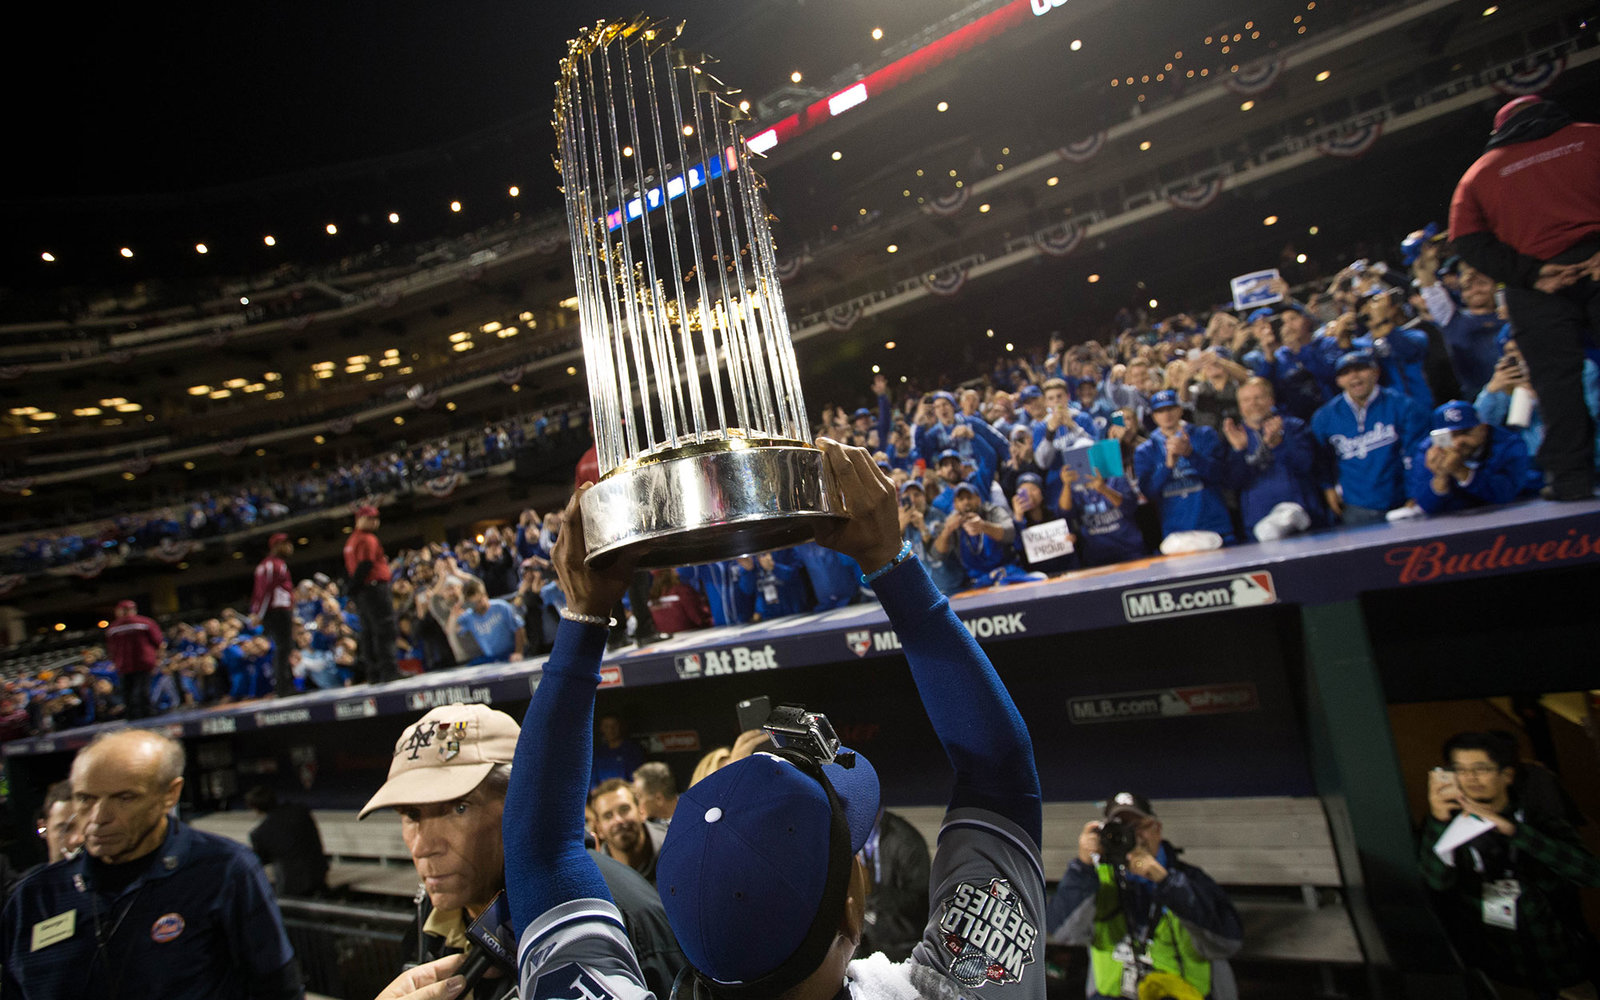 NEW YORK, NY - NOVEMBER 1:  Jarrod Dyson #1 of the Kansas City Royals is seen on the field with the Commissioner's Trophy after defeating the New York Mets in Game 5 of the 2015 World Series at Citi Field on Sunday, November 1, 2015 in the Queens borough